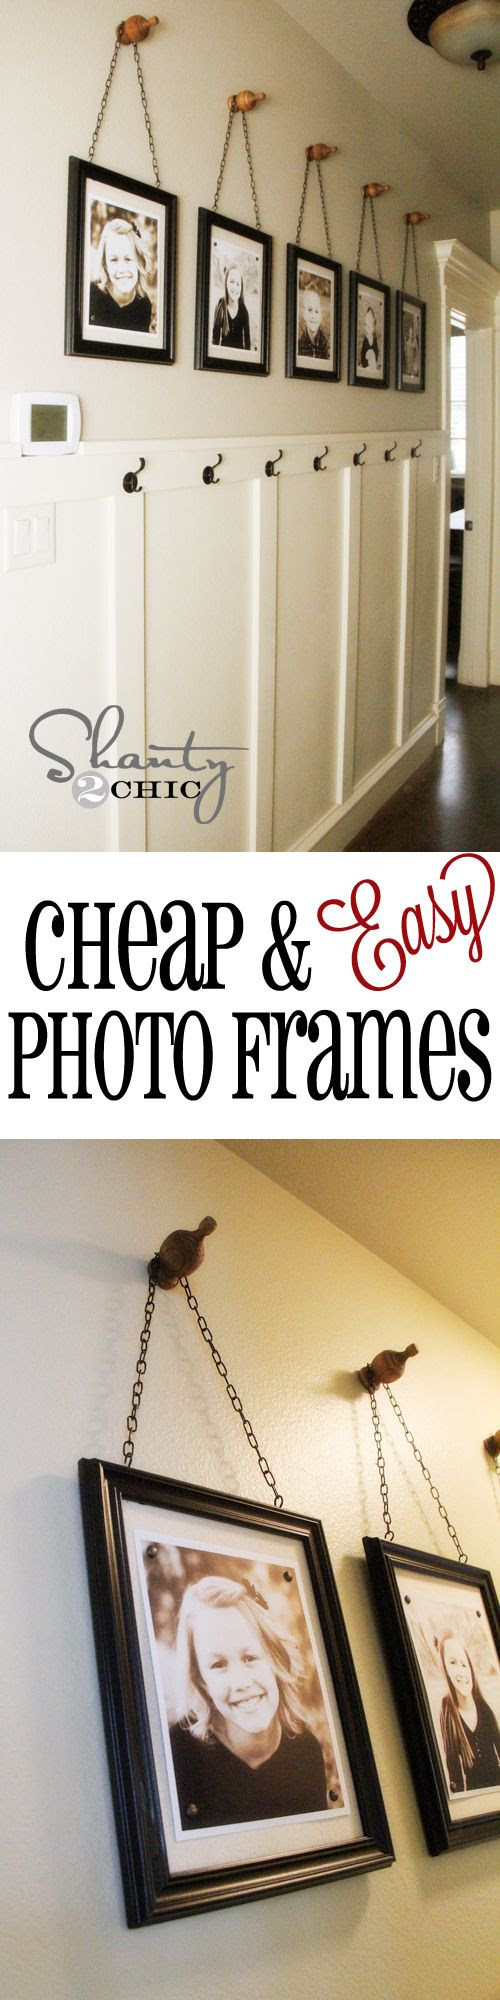 Cheap & Easy Picture Frames! All you need is a hot glue gun... Woohoo!